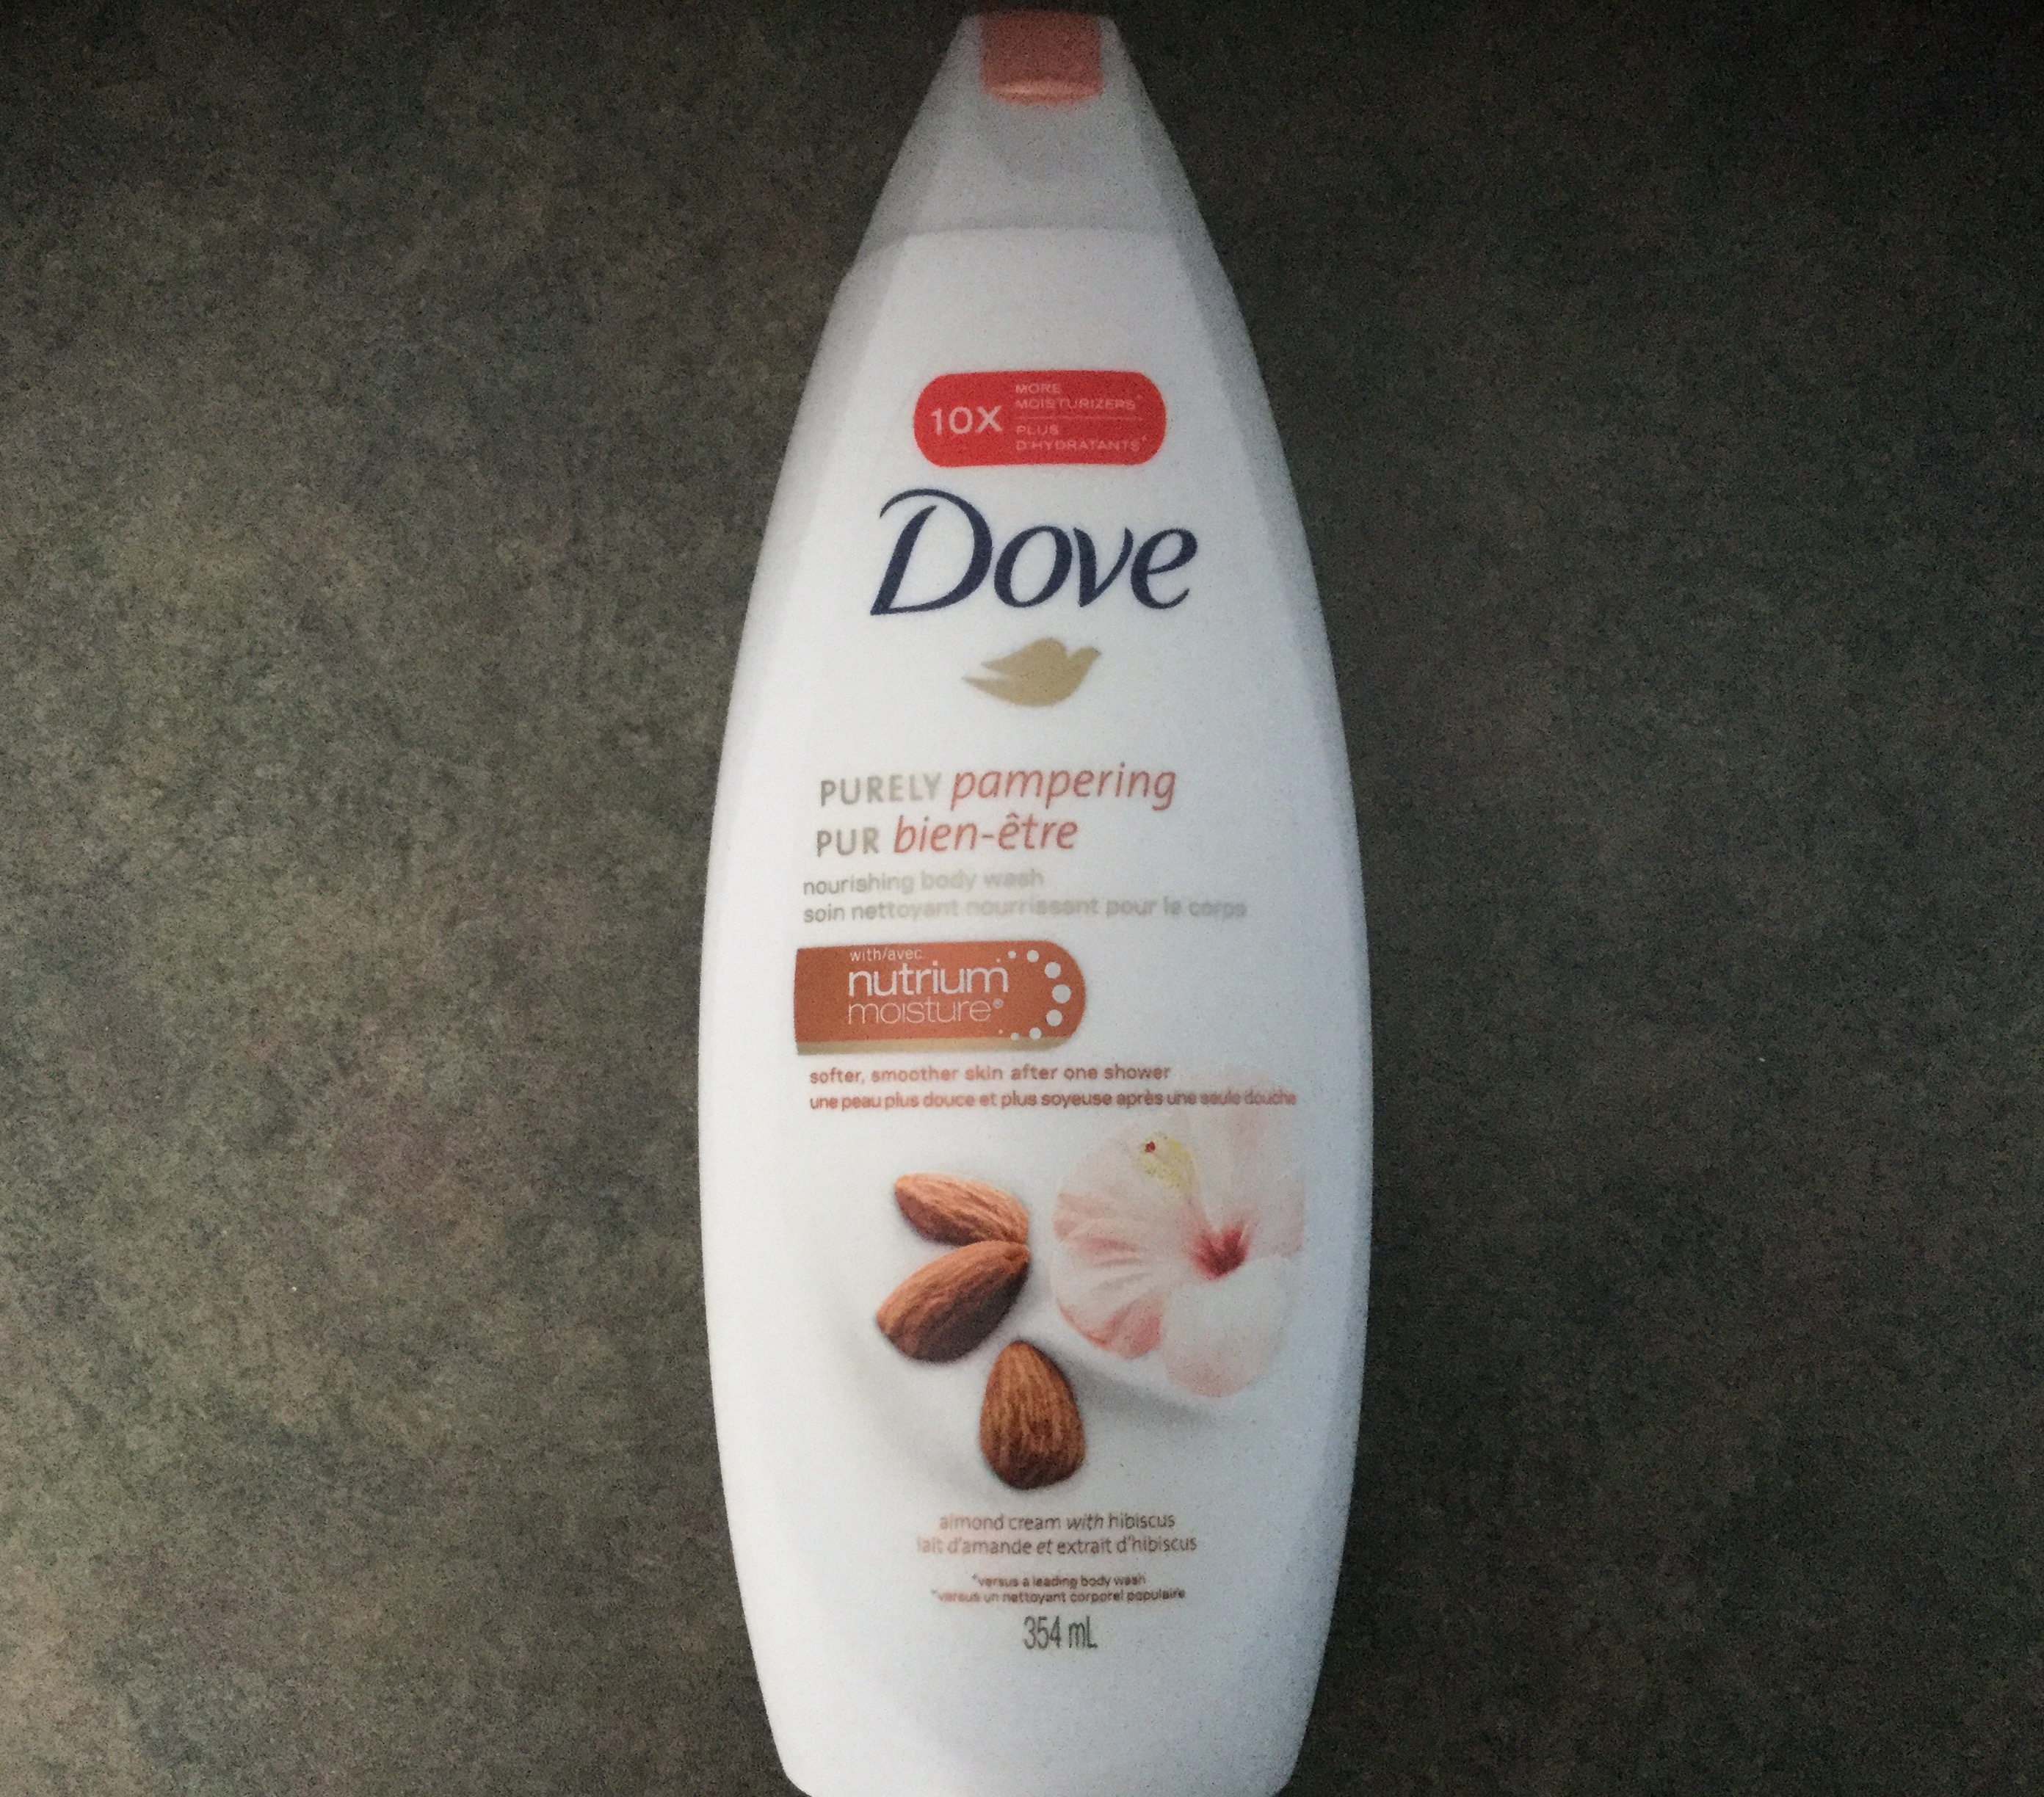 Dove Almond Cream With Hibiscus Body Wash Reviews In Body Wash Shower Gel Chickadvisor